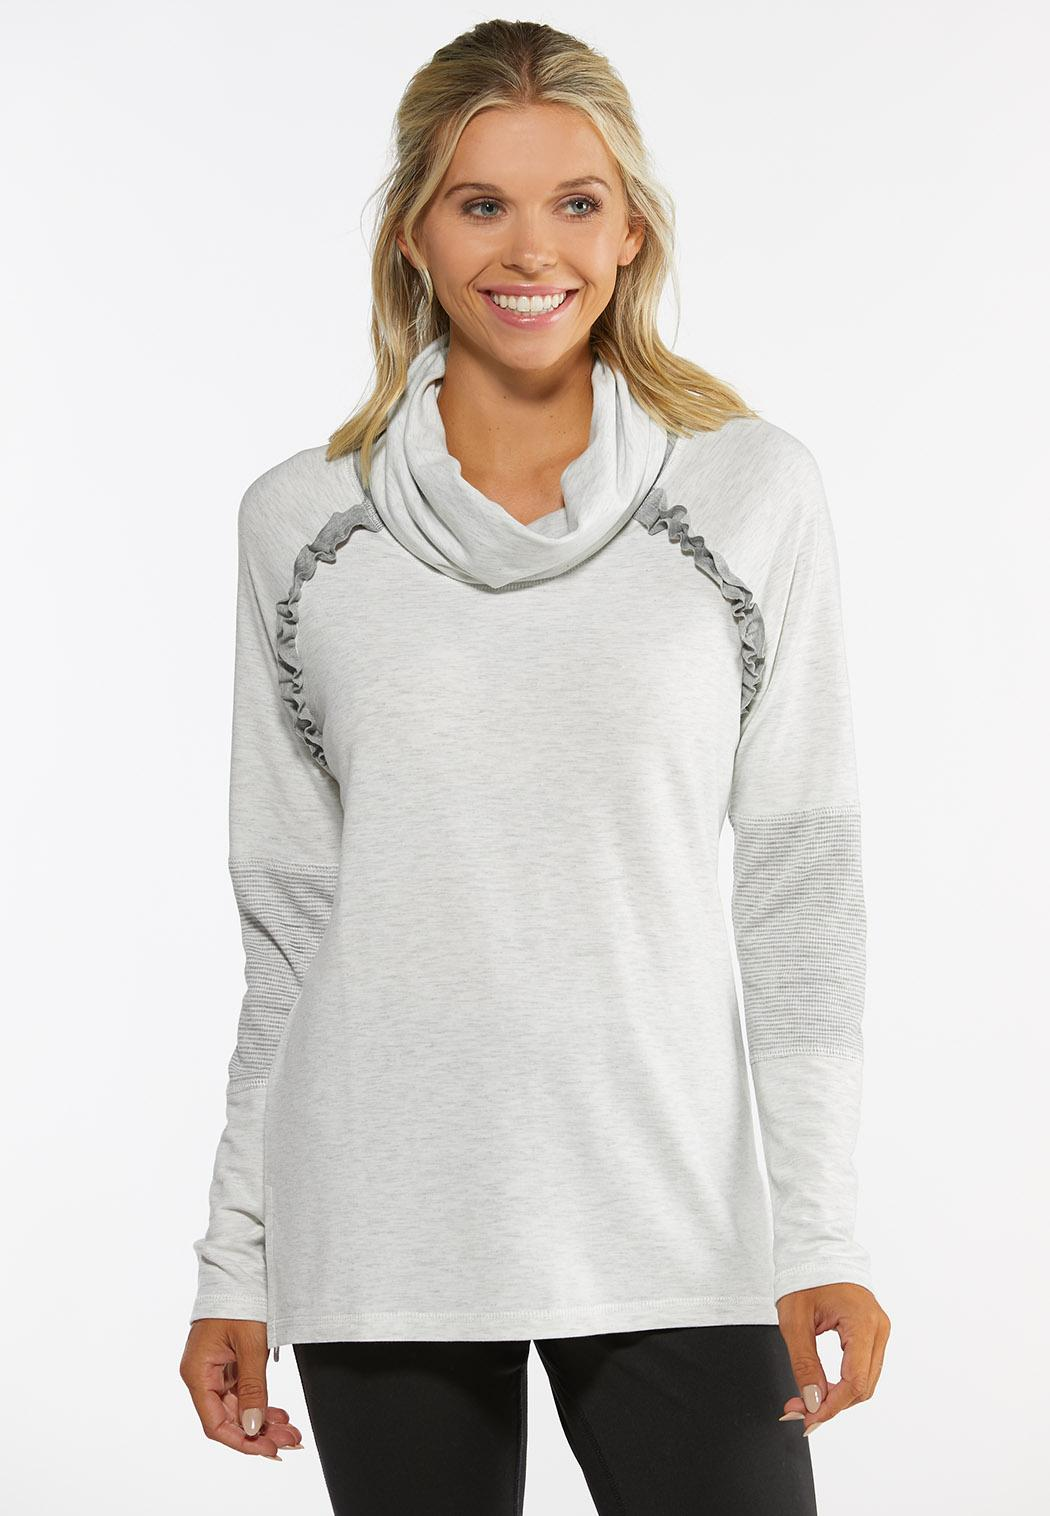 Ruffled Cowlneck Athleisure Top